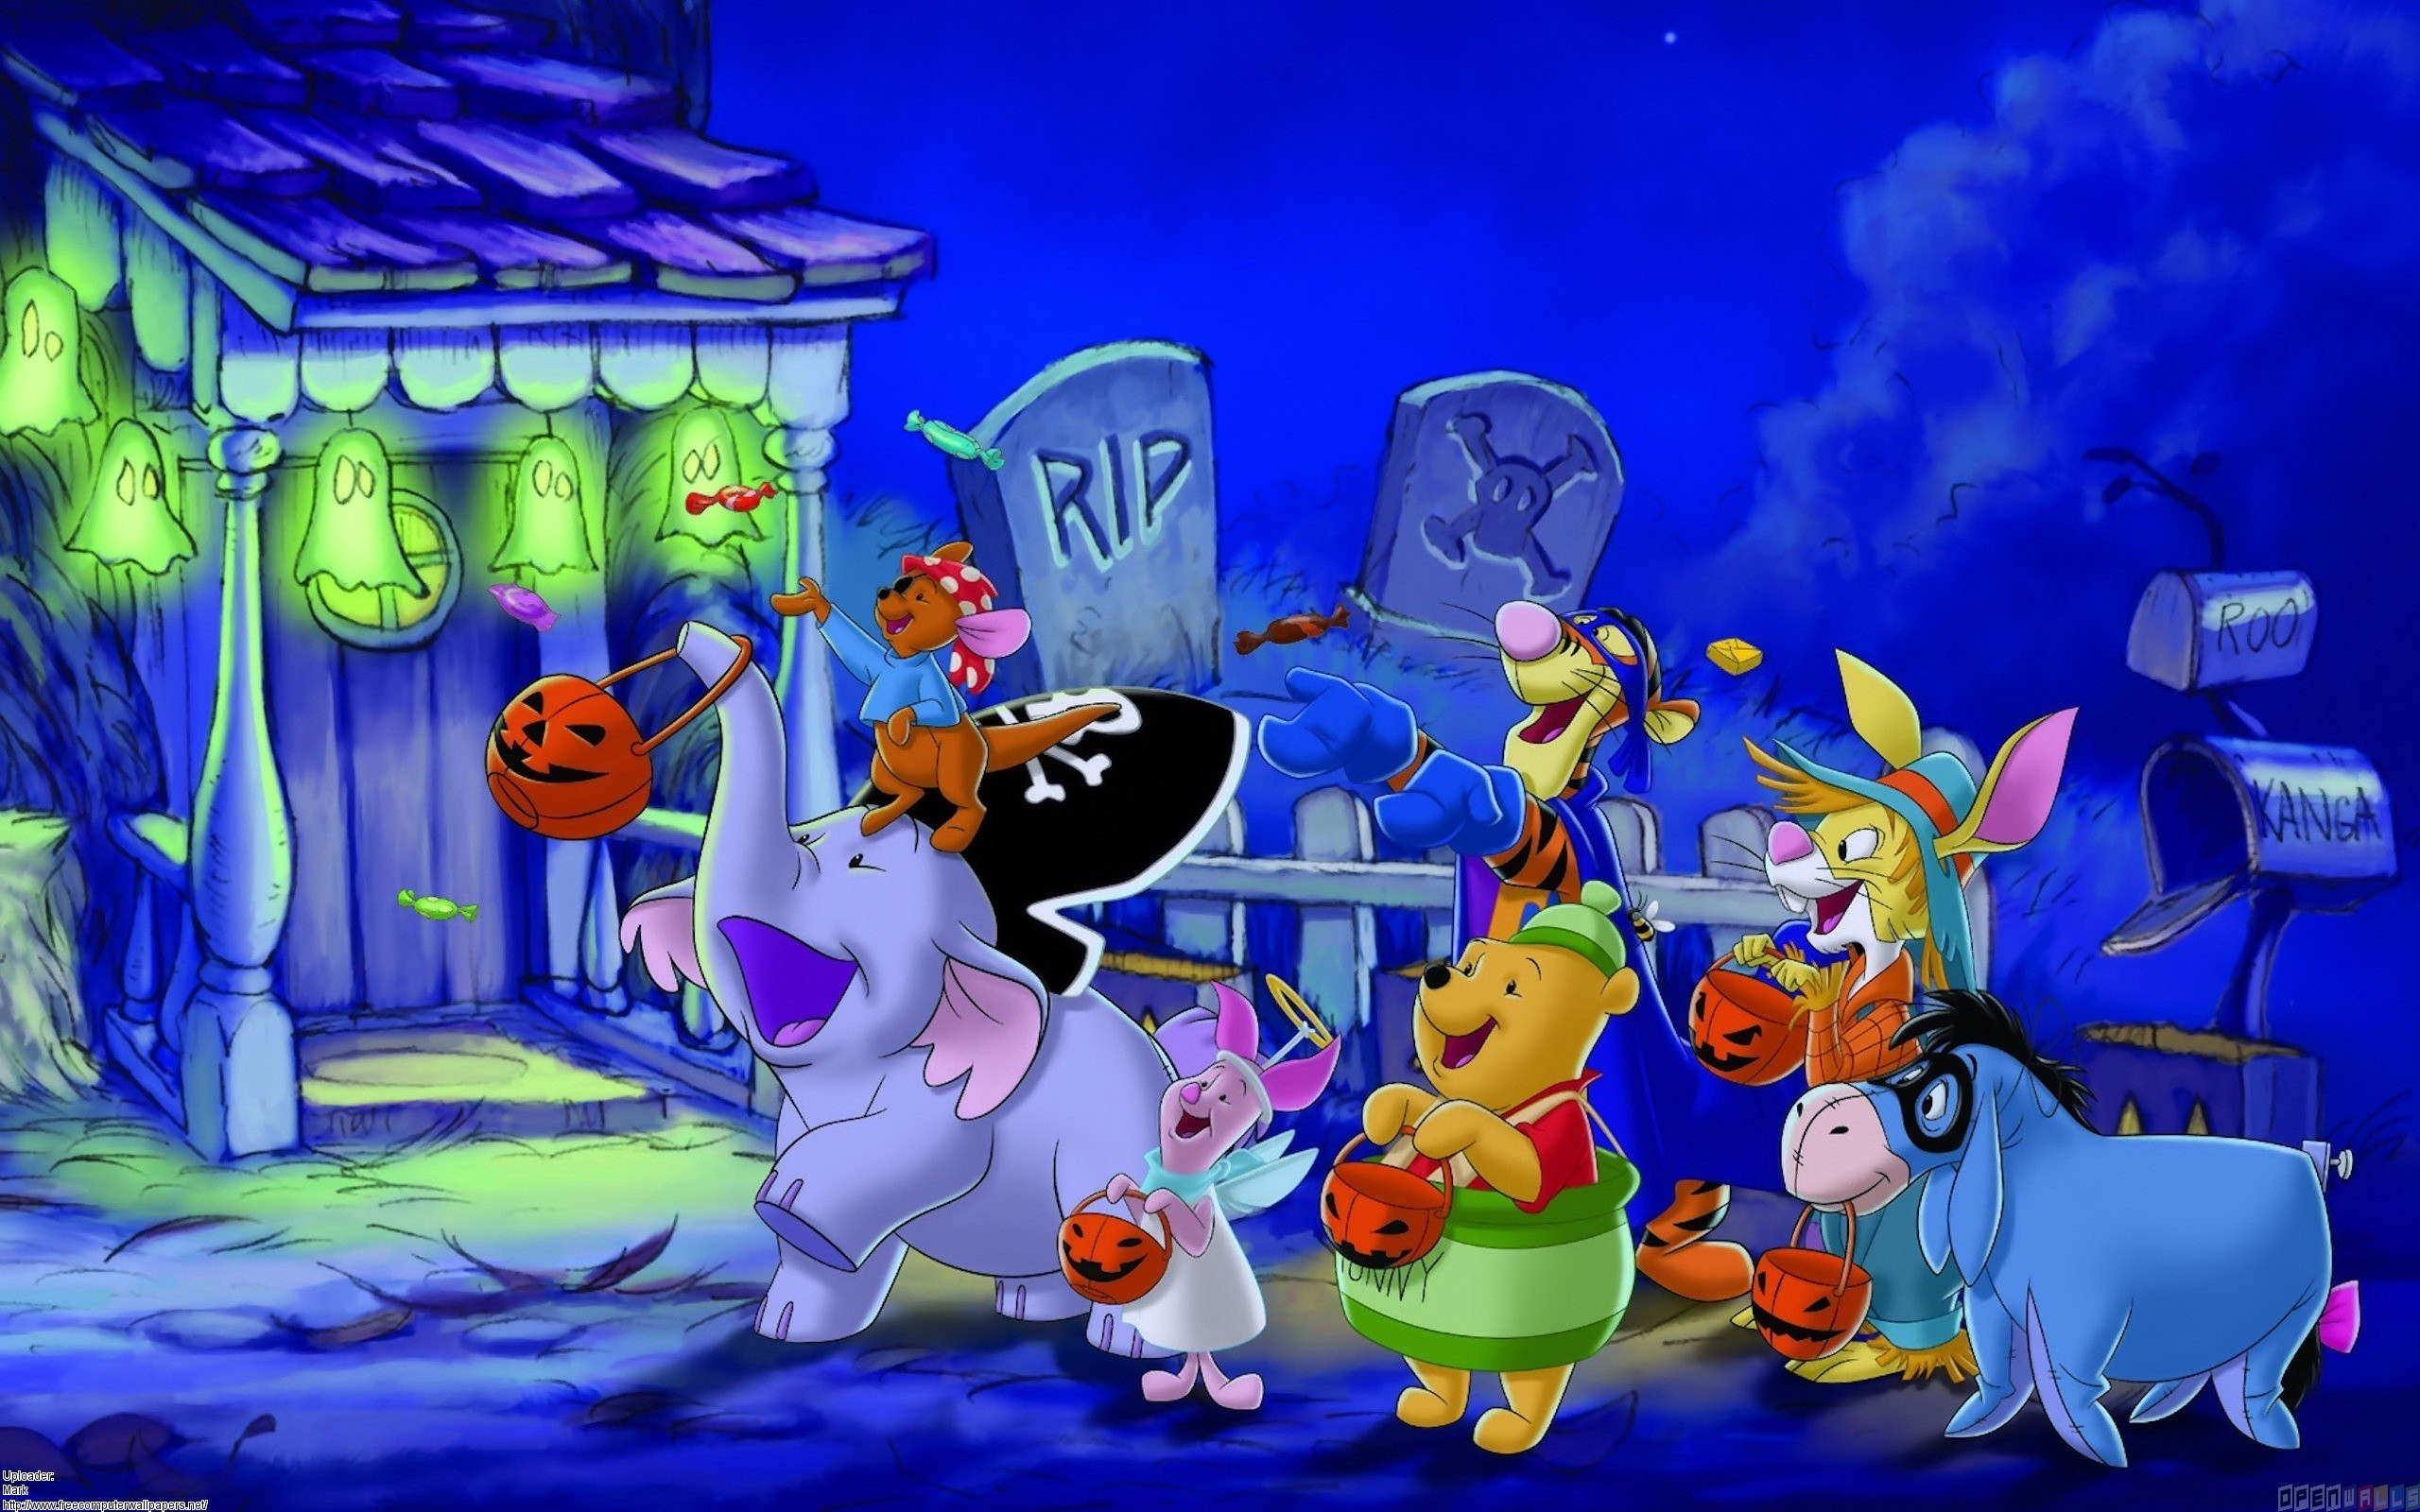 Disney halloween, trick or treating for candy wallpaper #16419 – Open .